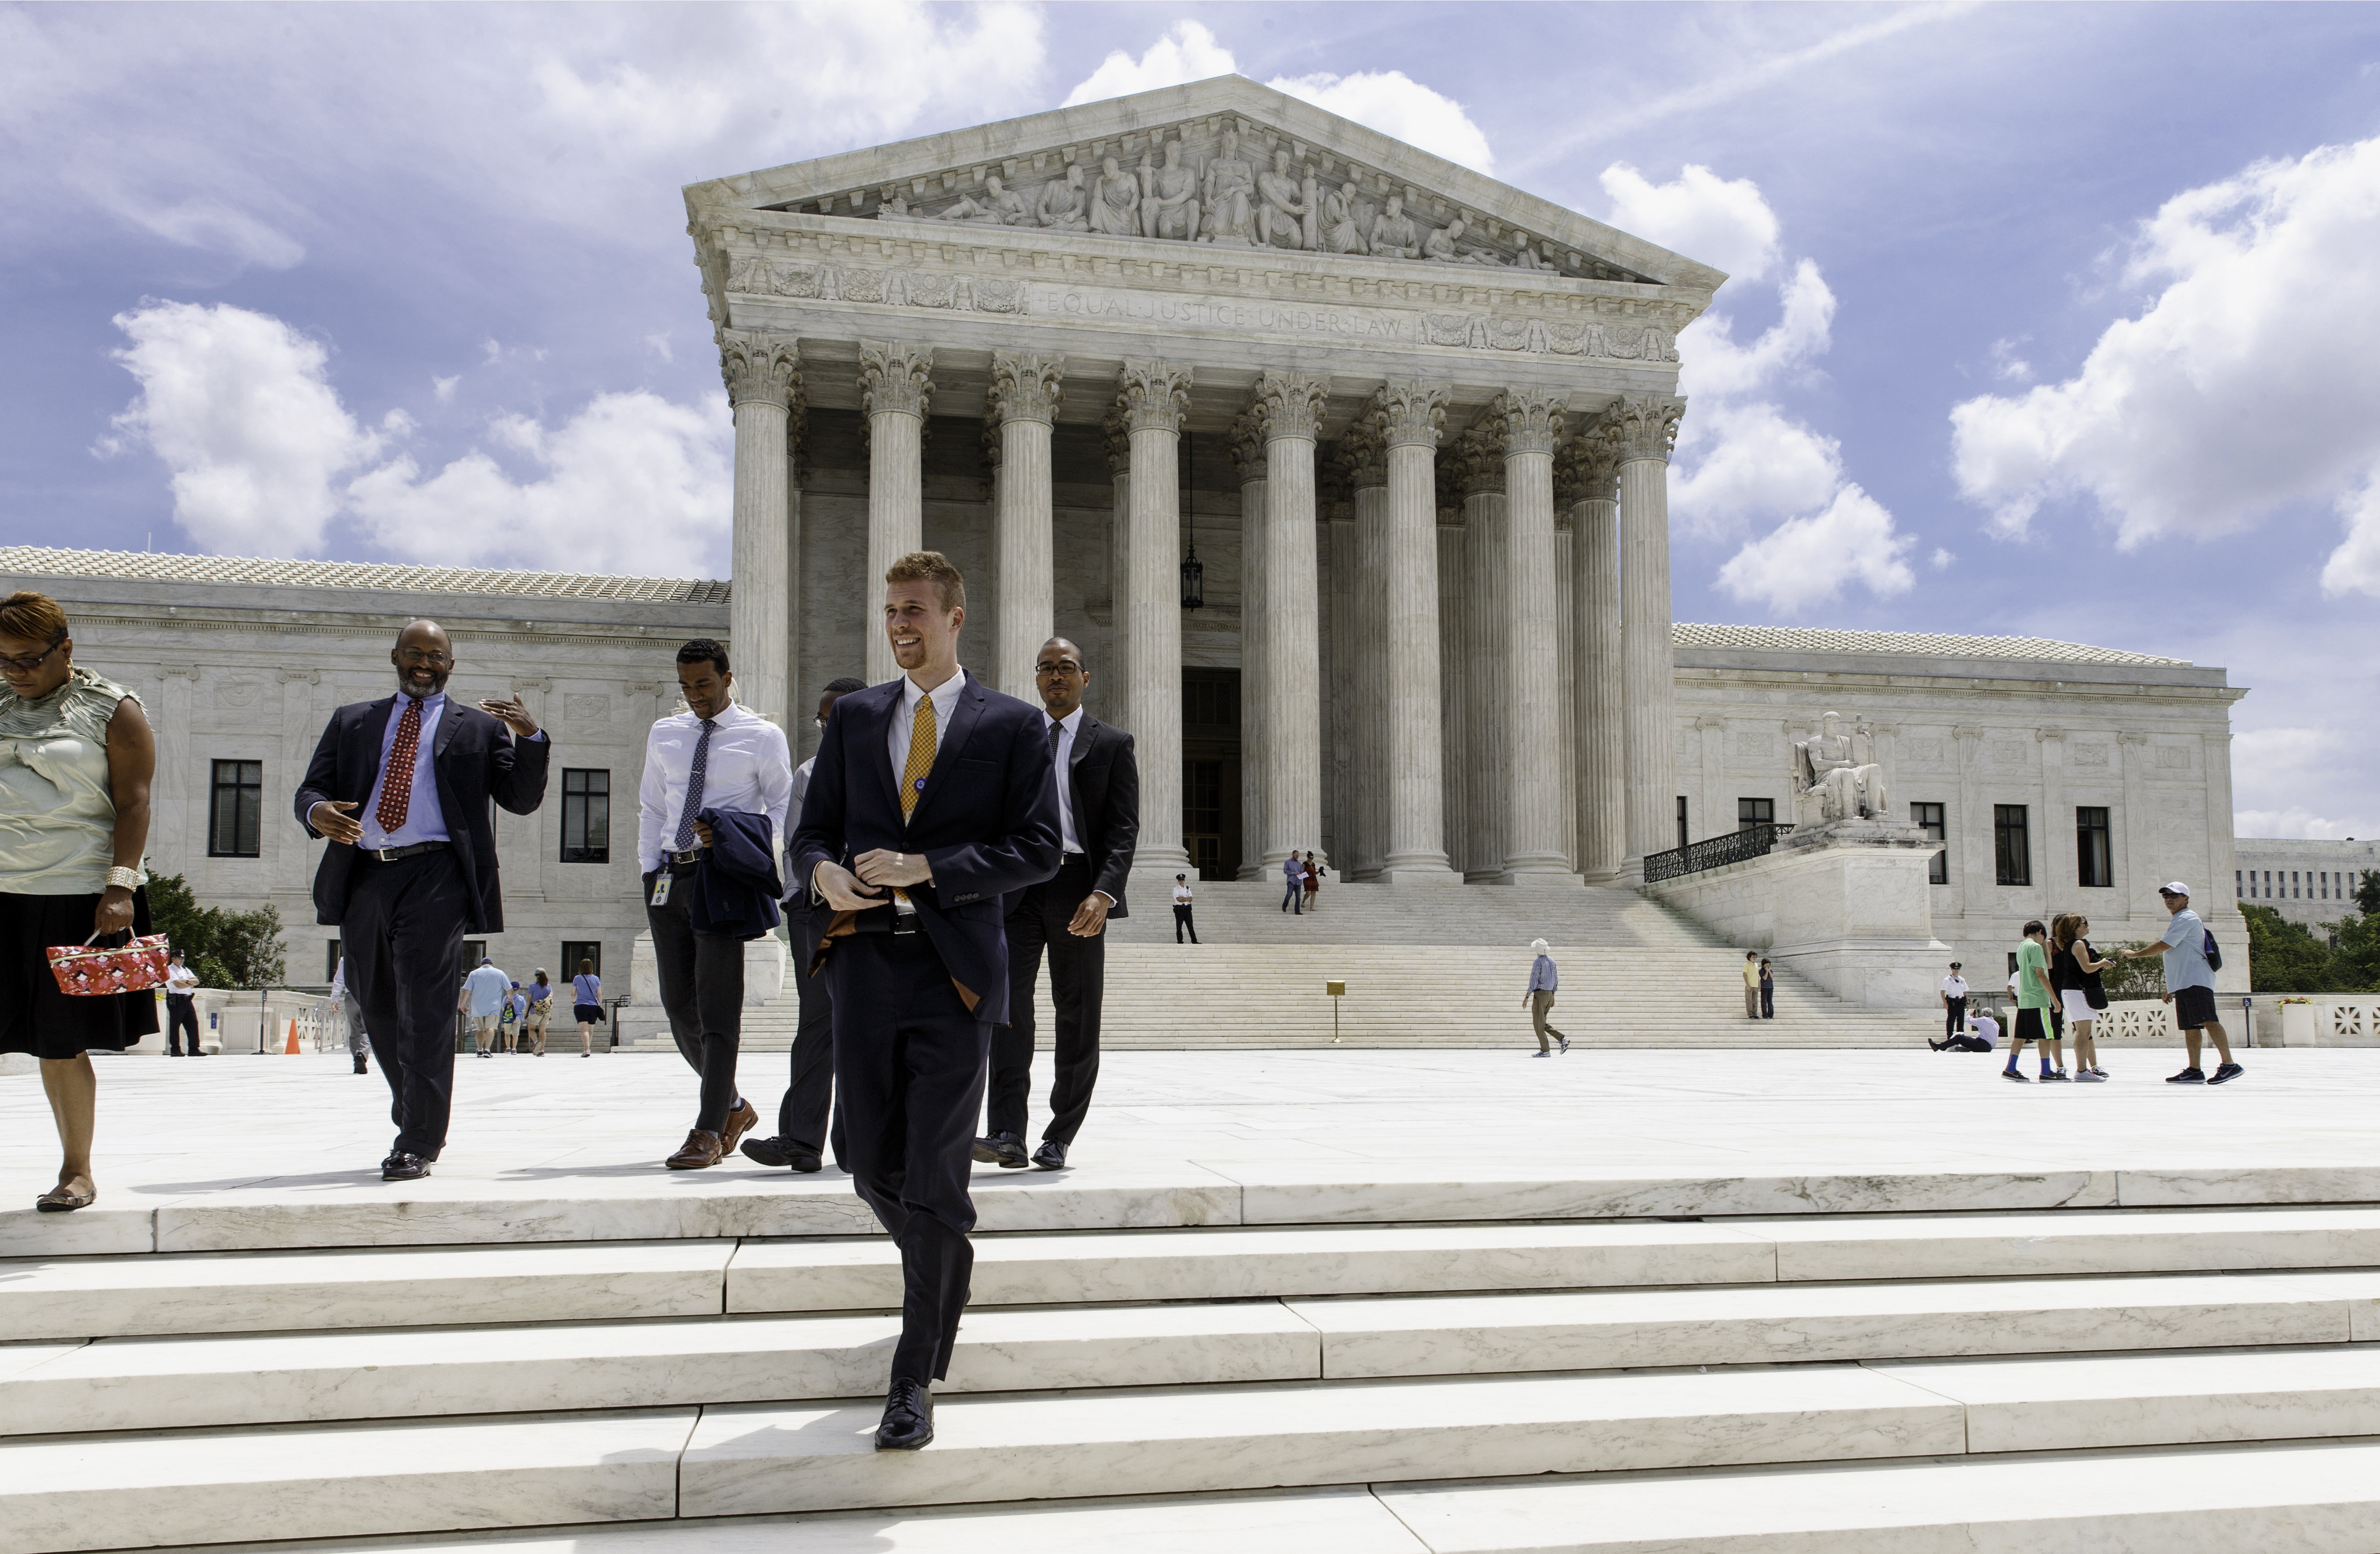 U.S. Supreme Court Asked to Review Louisiana Marriage Case